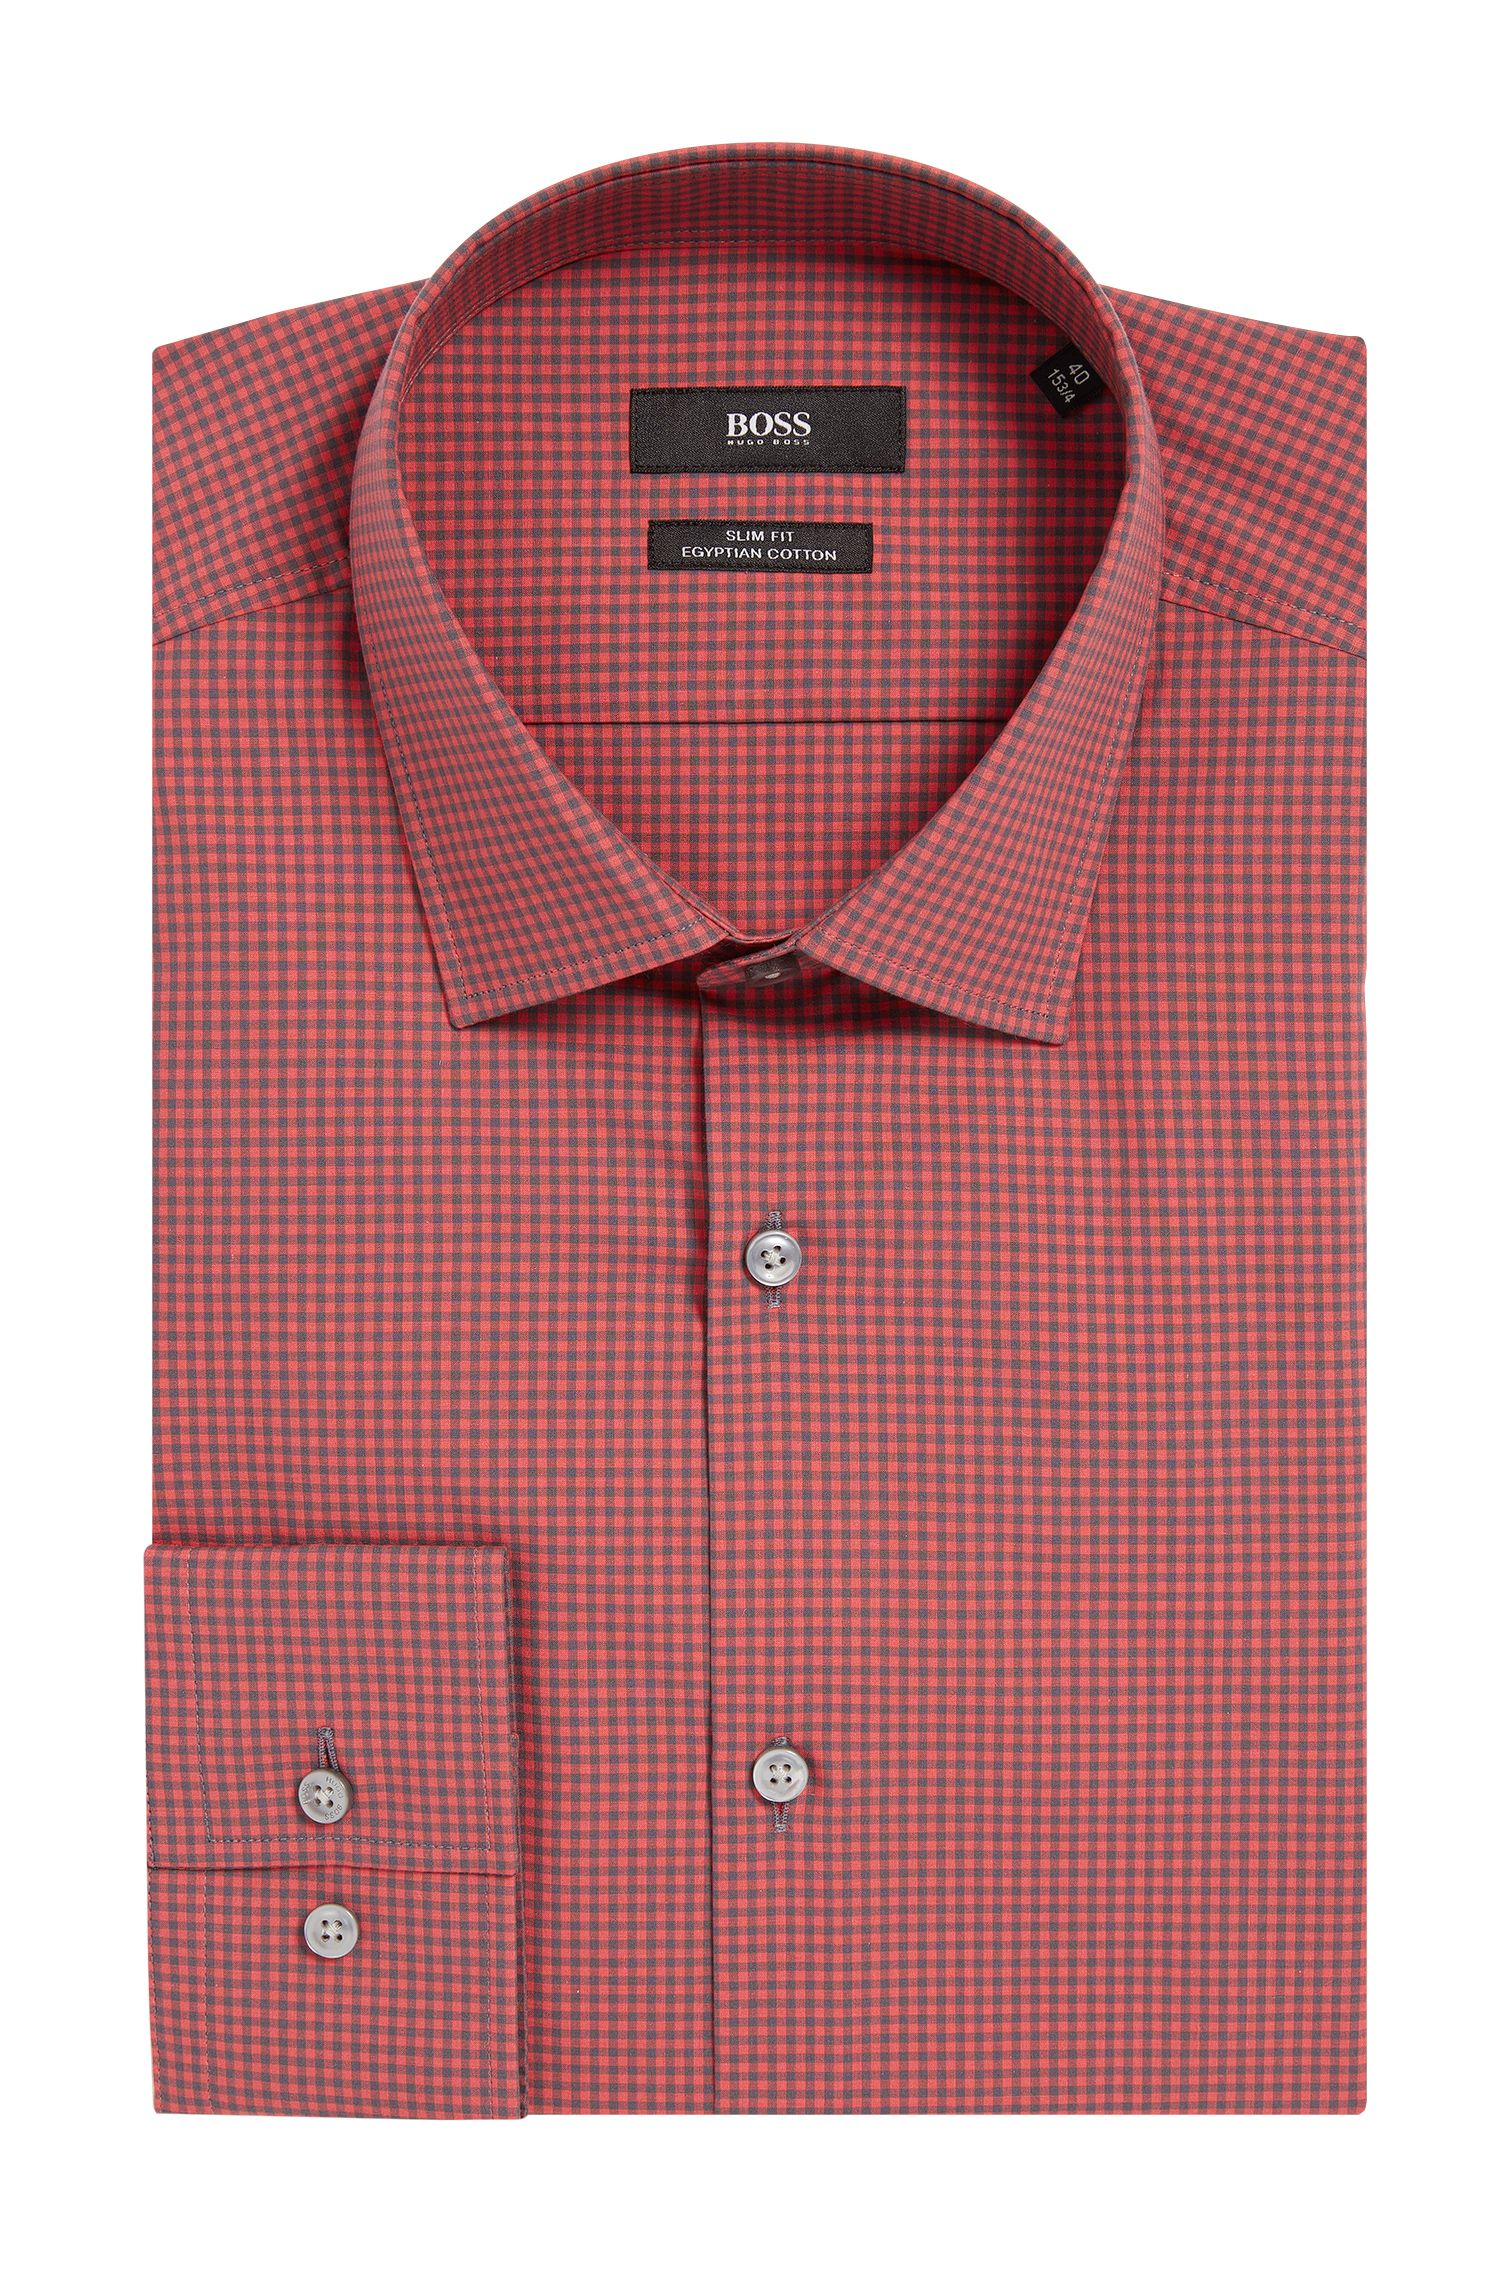 Mini Gingham Egyptian Cotton Dress Shirt, Slim Fit | Jenno